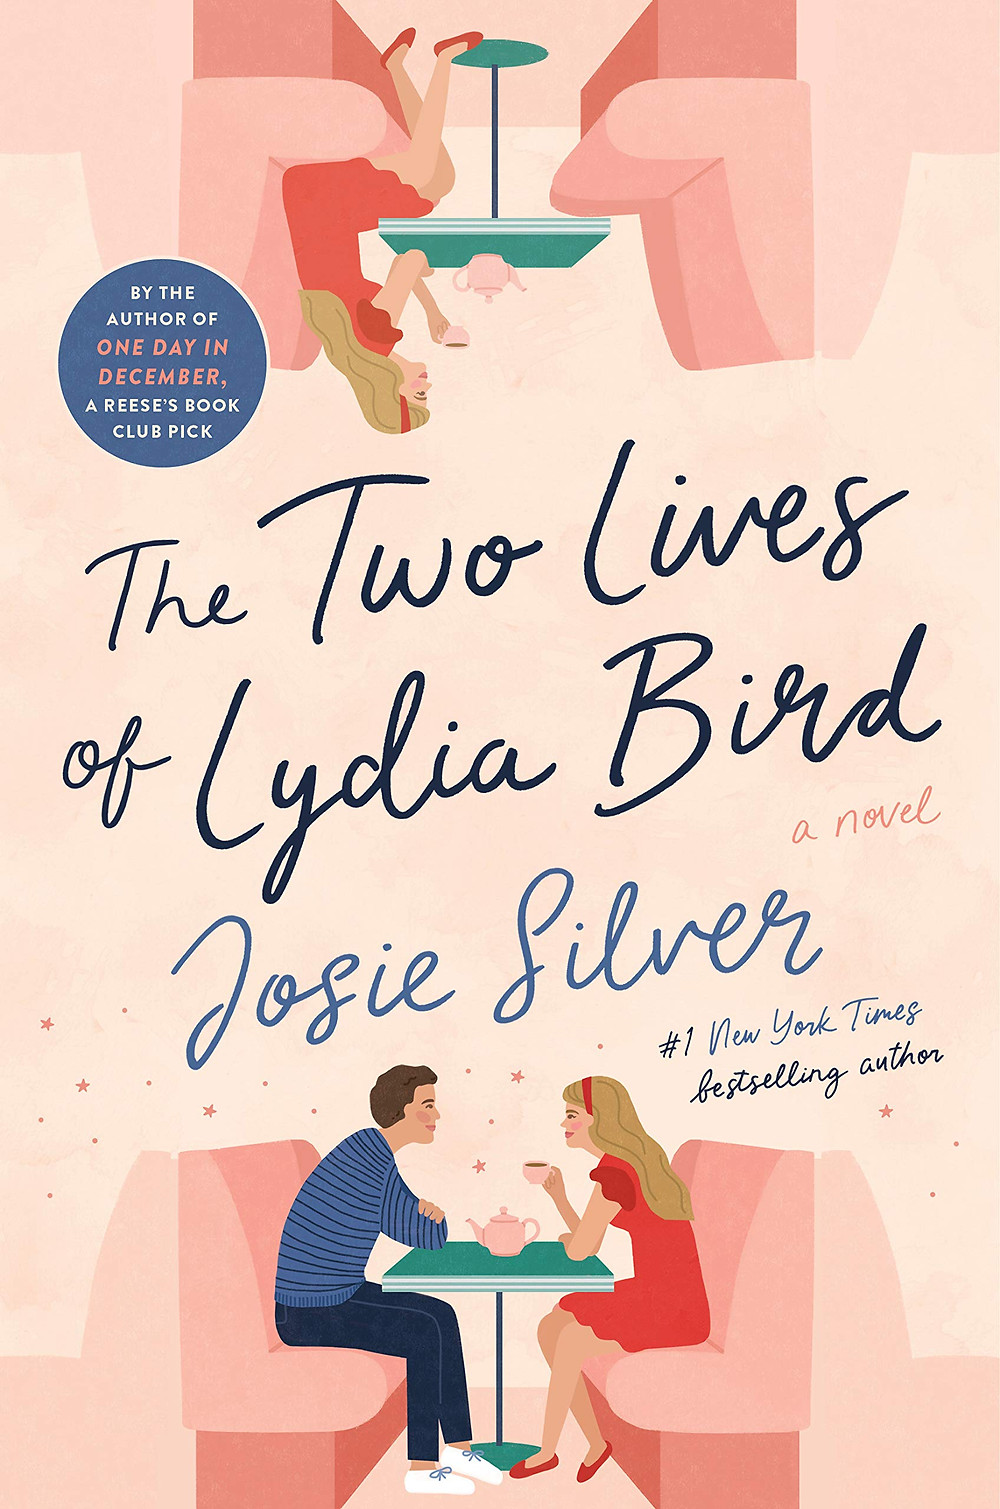 book cover of The Two Lives of Lydia Bird by Josie Silver